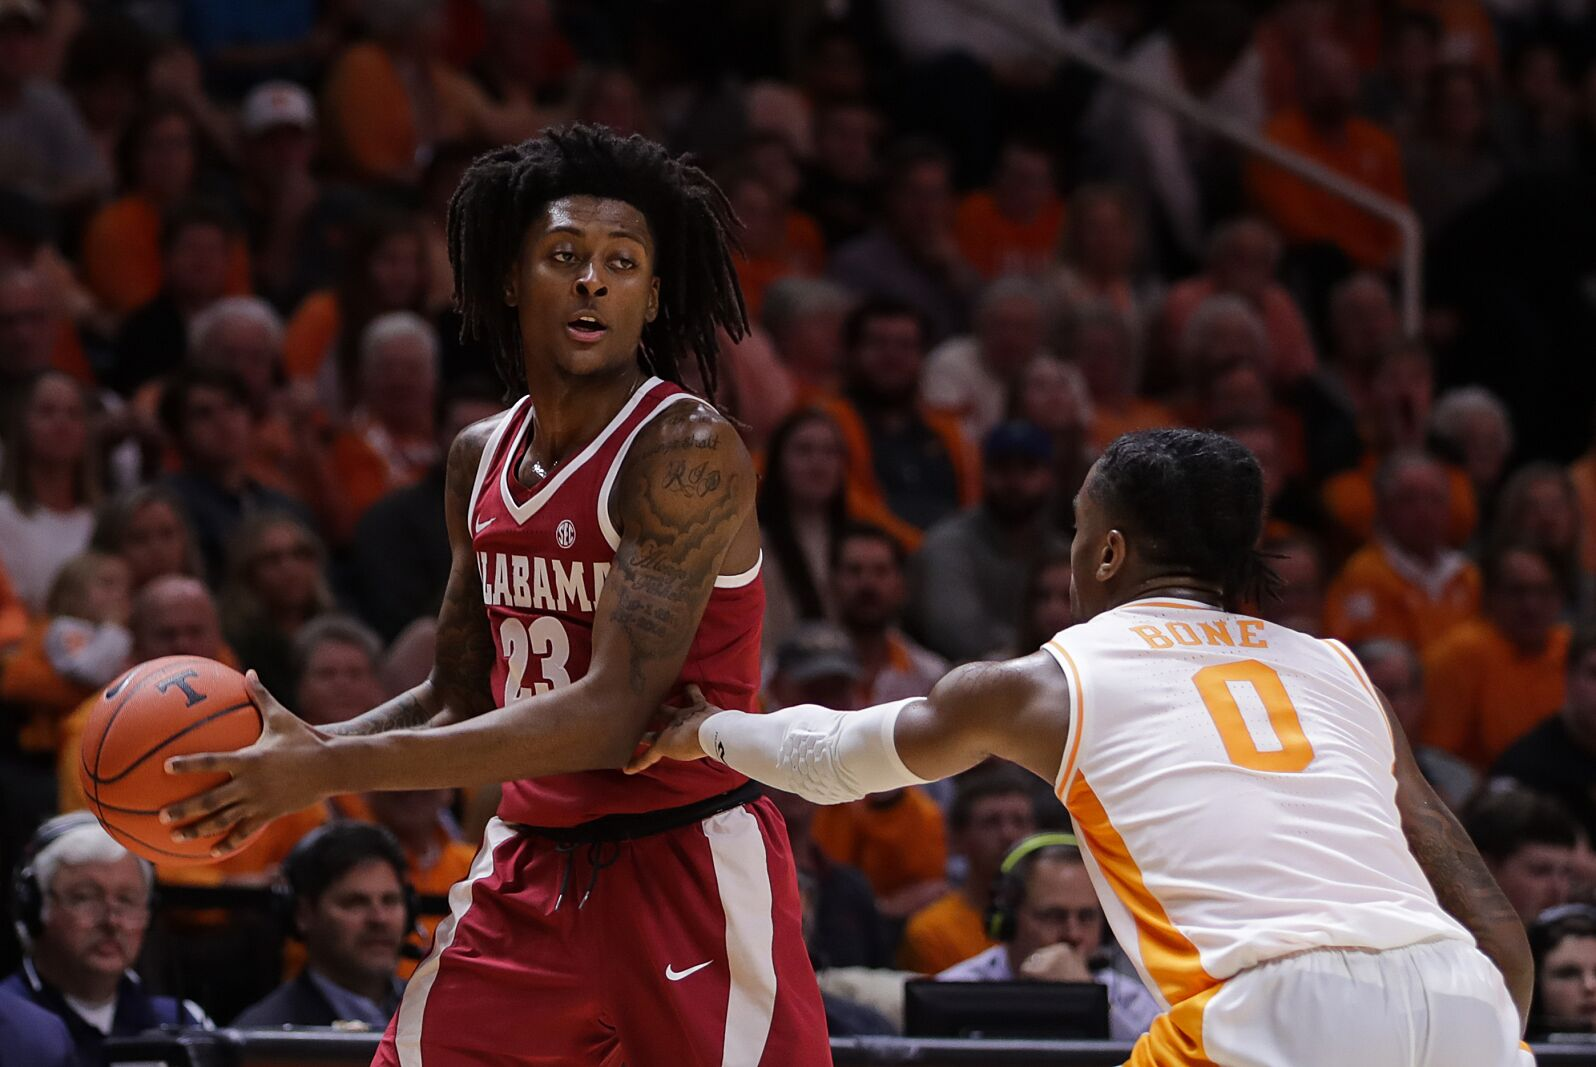 Alabama Basketball: 5 crucial games on 2019-20 schedule to look out for